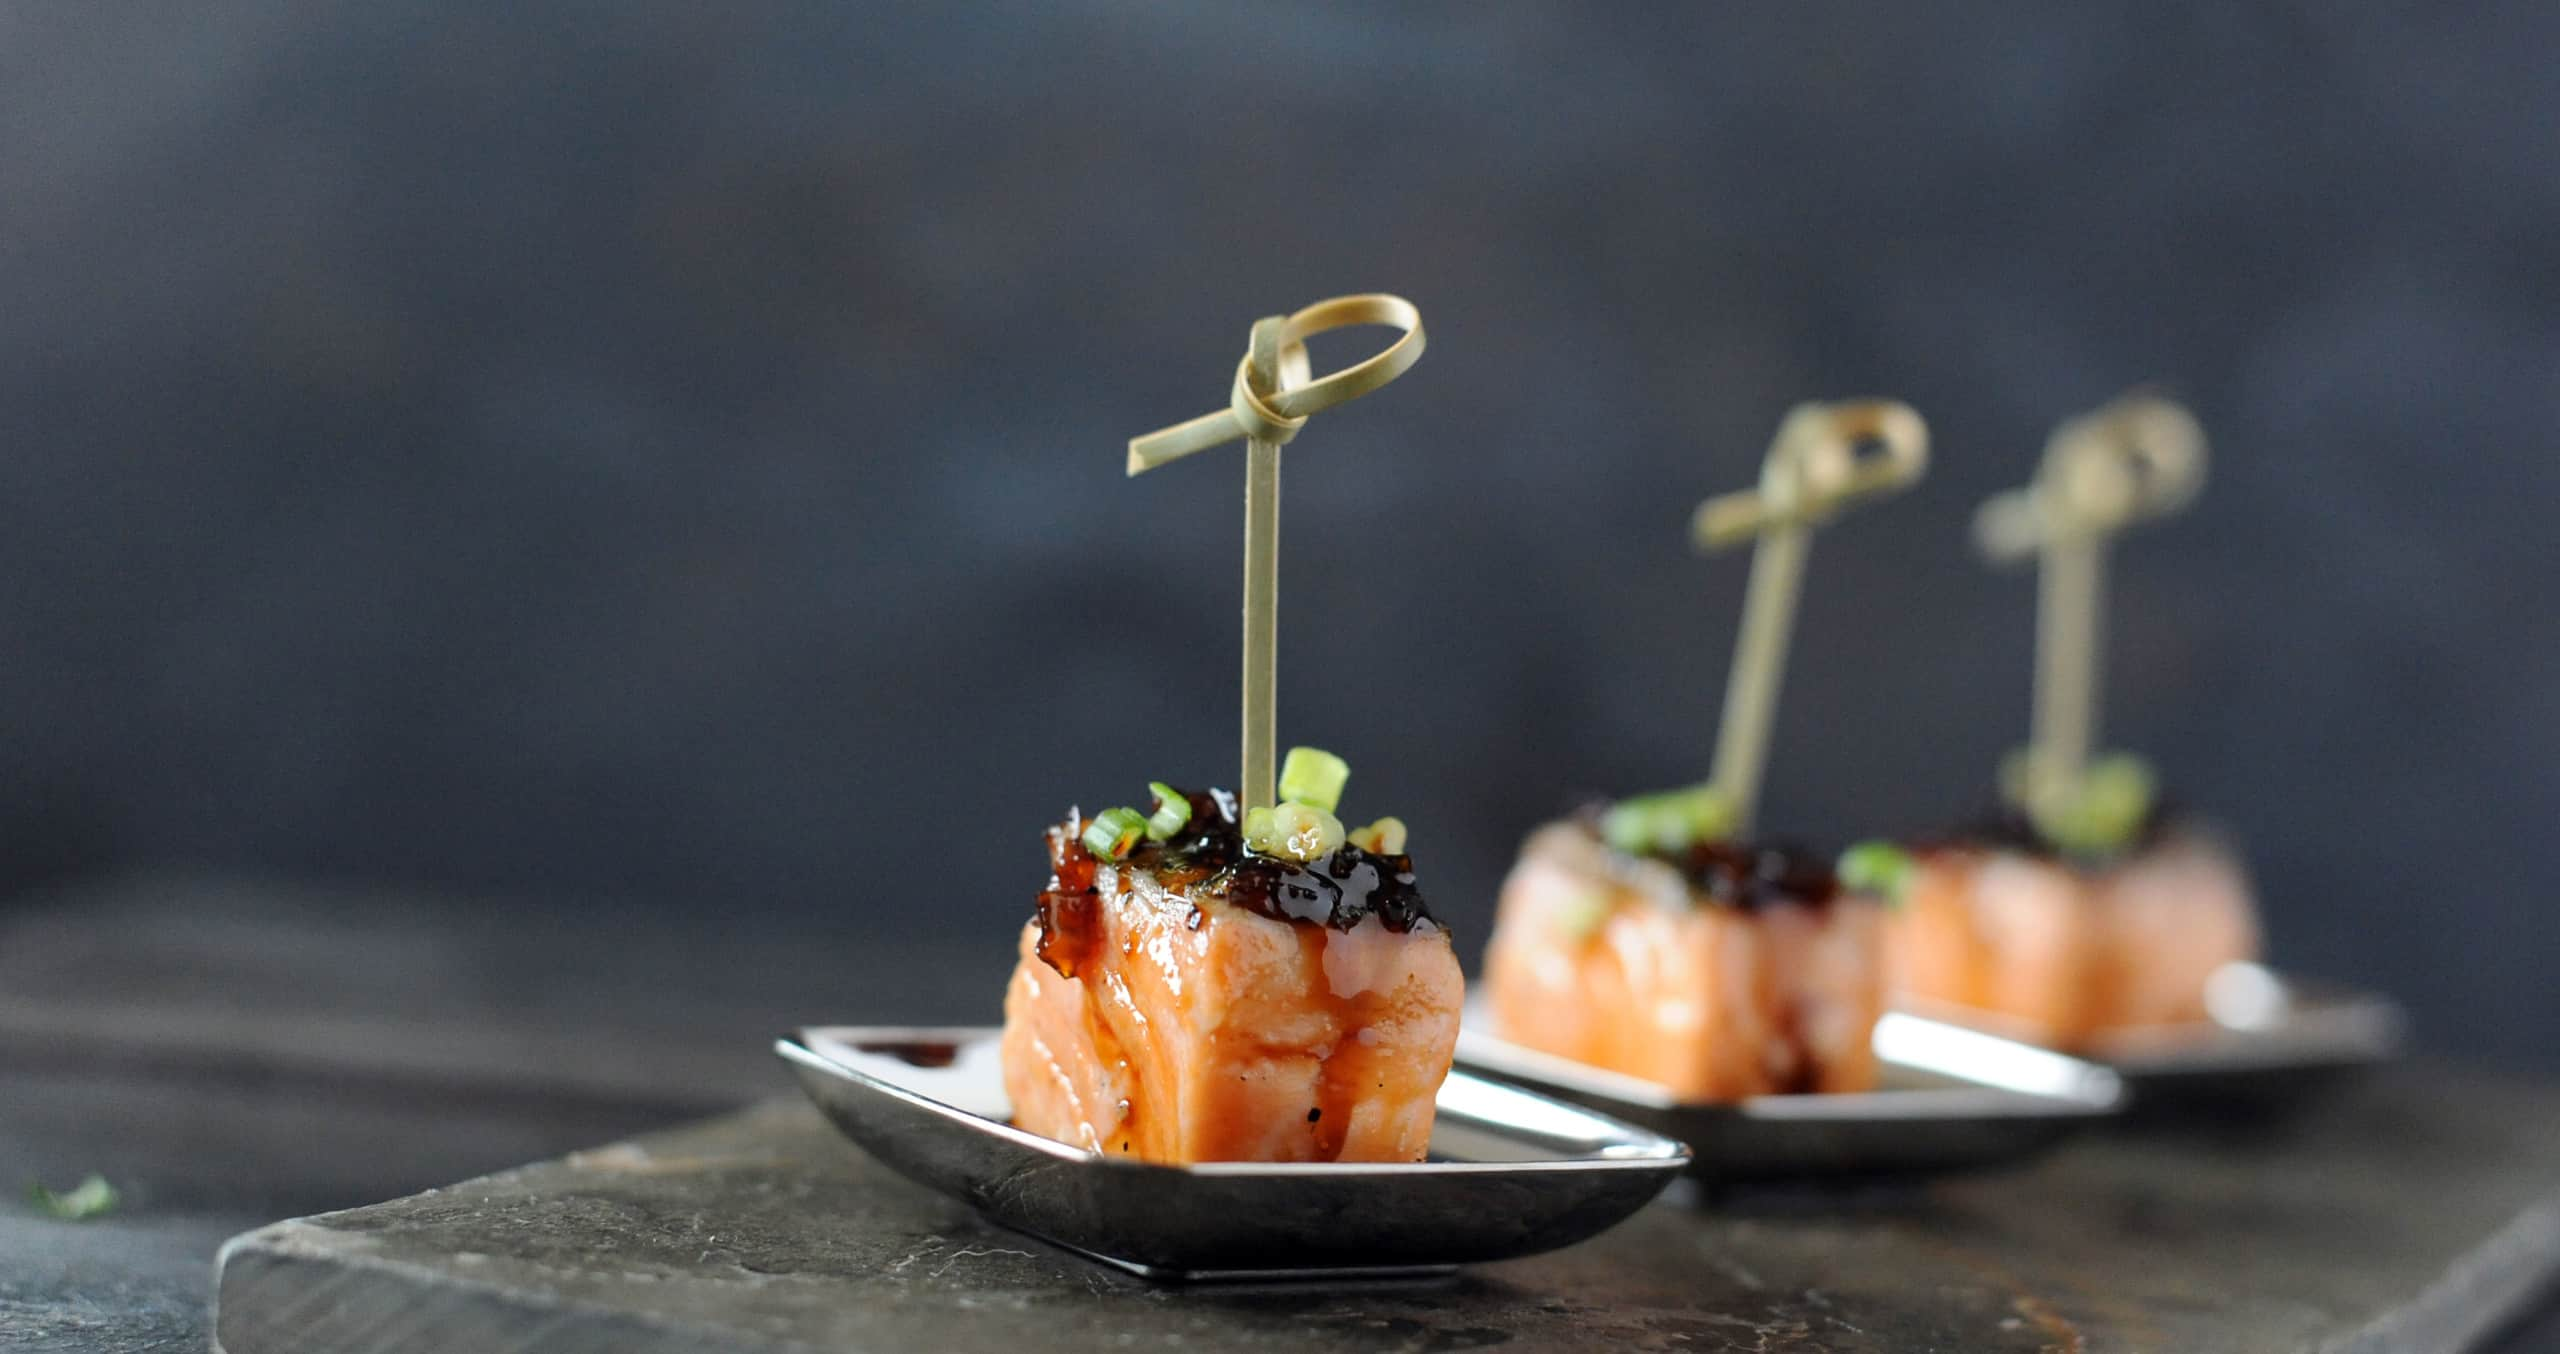 cubed salmon appetizers topped with bourbon glaze